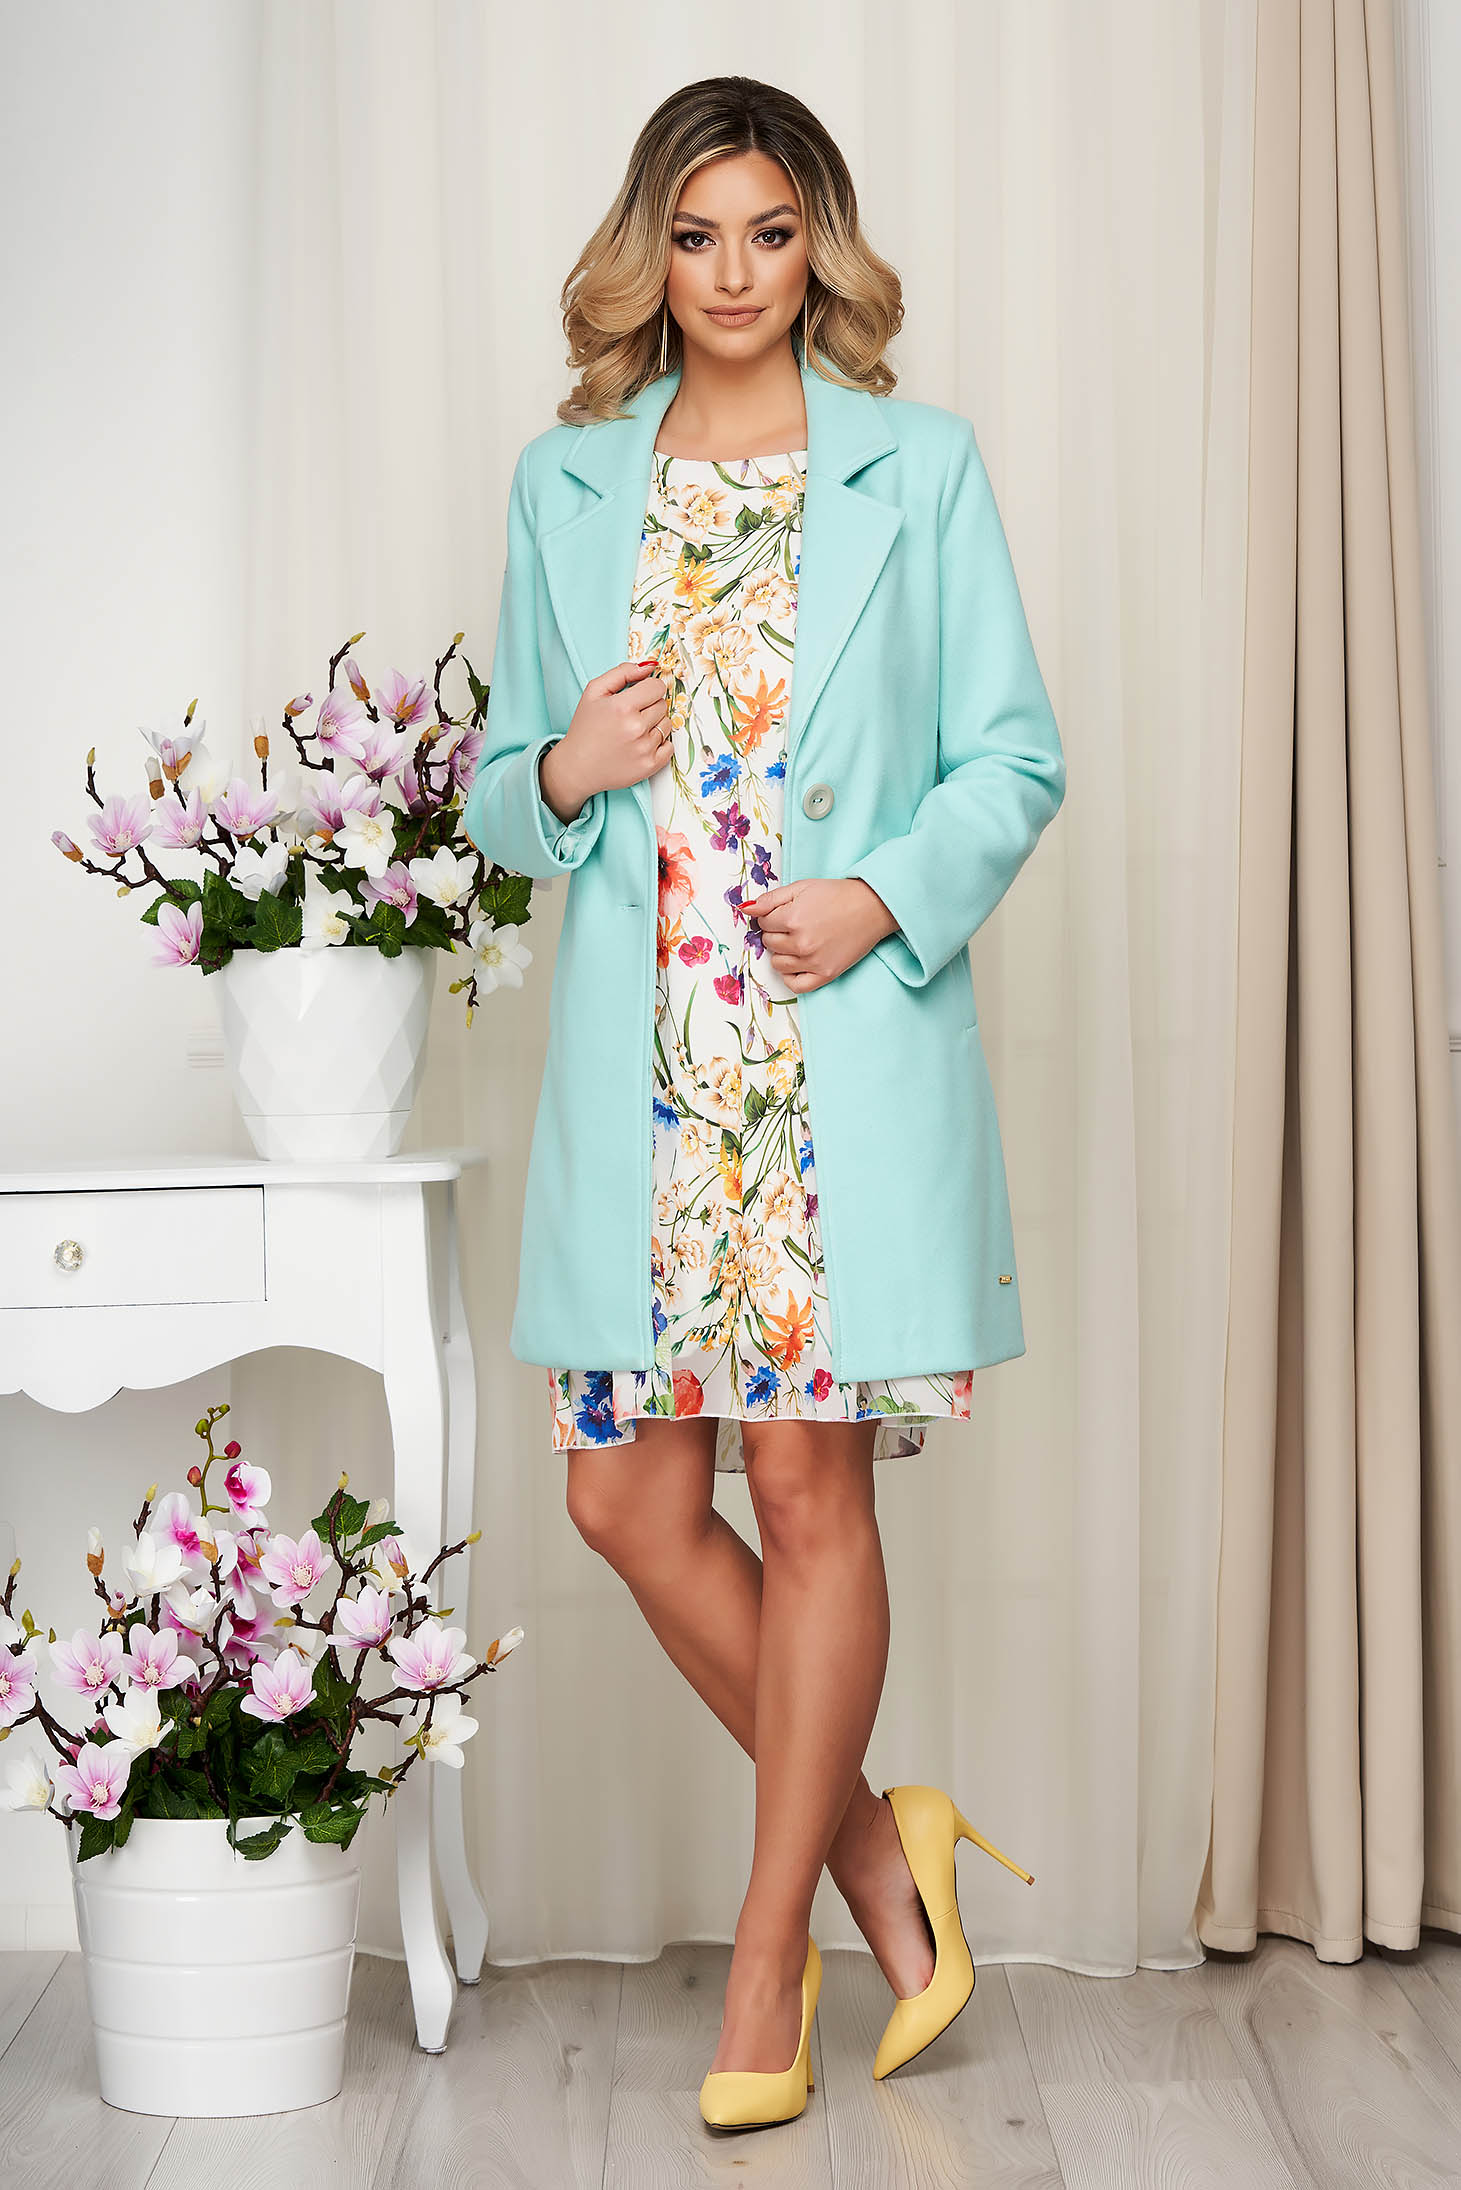 Overcoat turquoise soft fabric straight short cut